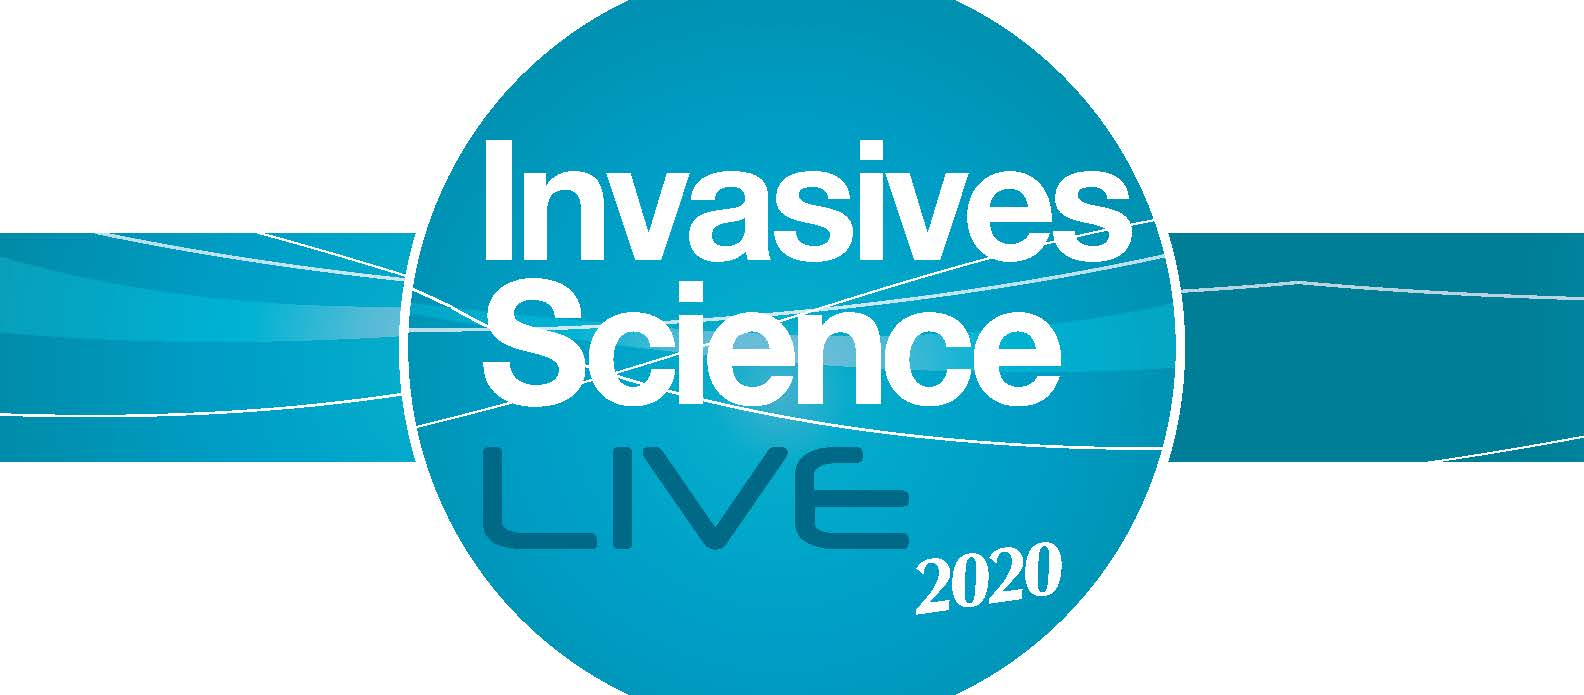 Invasives Science Live 2020